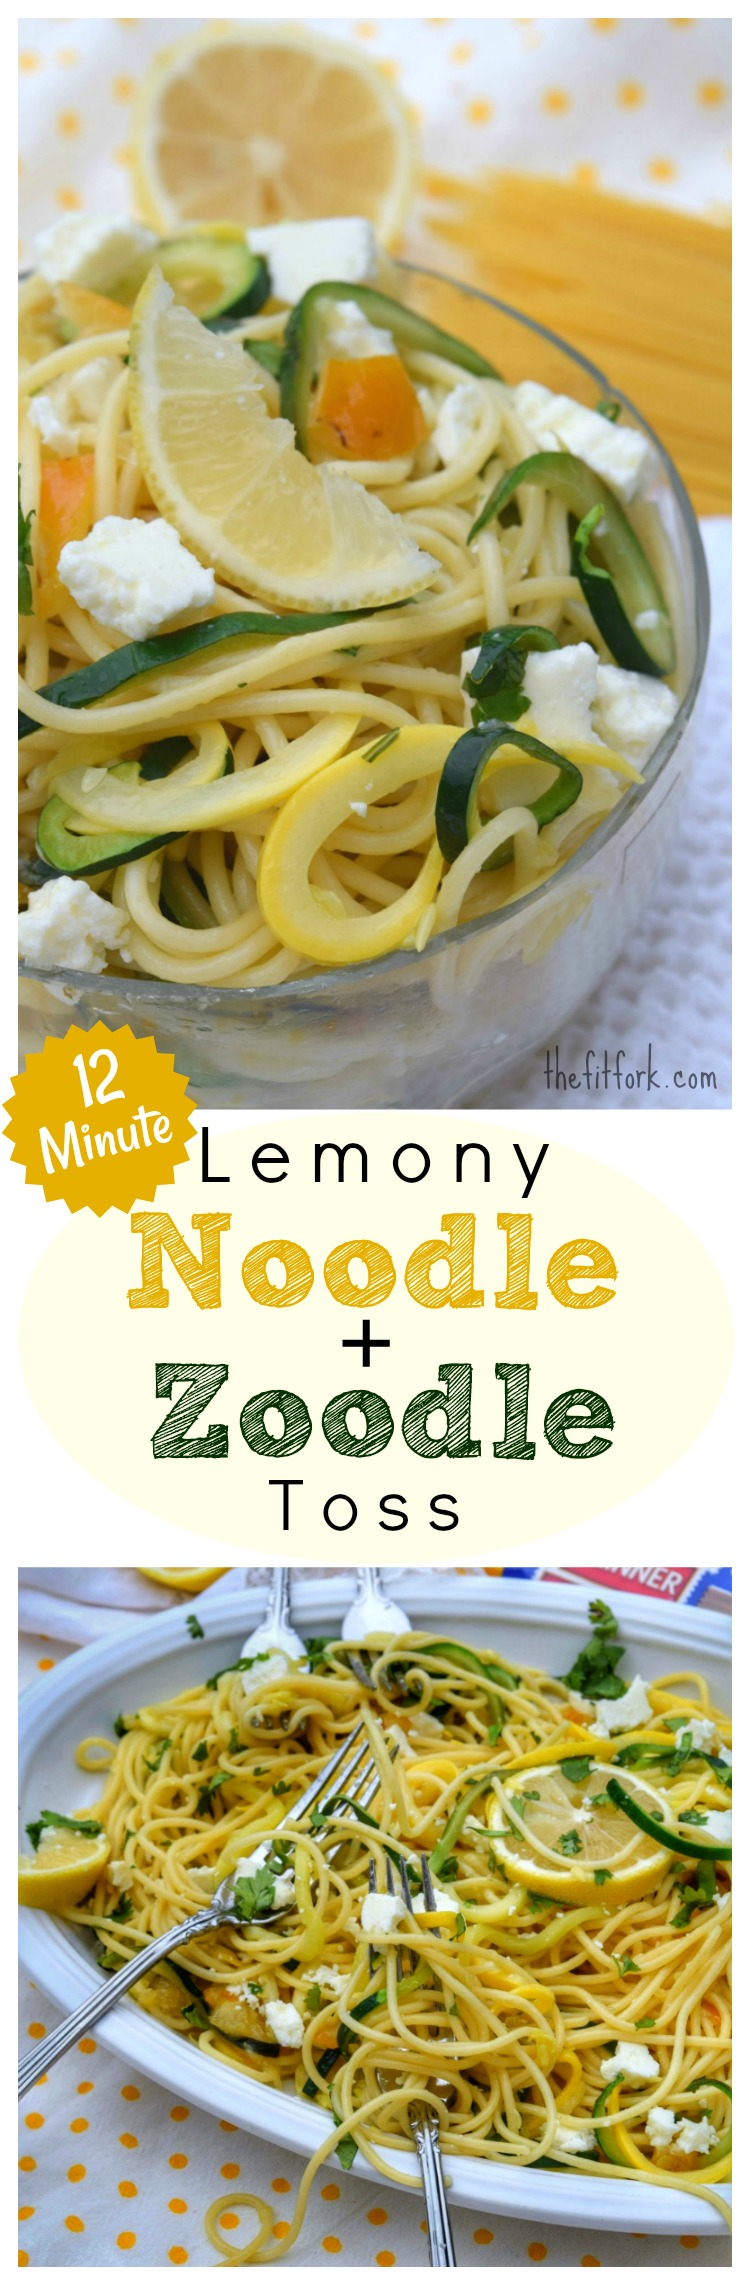 12 Minute Lemony Noodle Zoodle Toss - this pasta and squash dish is super easy and comes together in one part in just the short time it takes to boil the noodles. Great as a side dish or paired with your favorite lean protein for lunch or dinner.